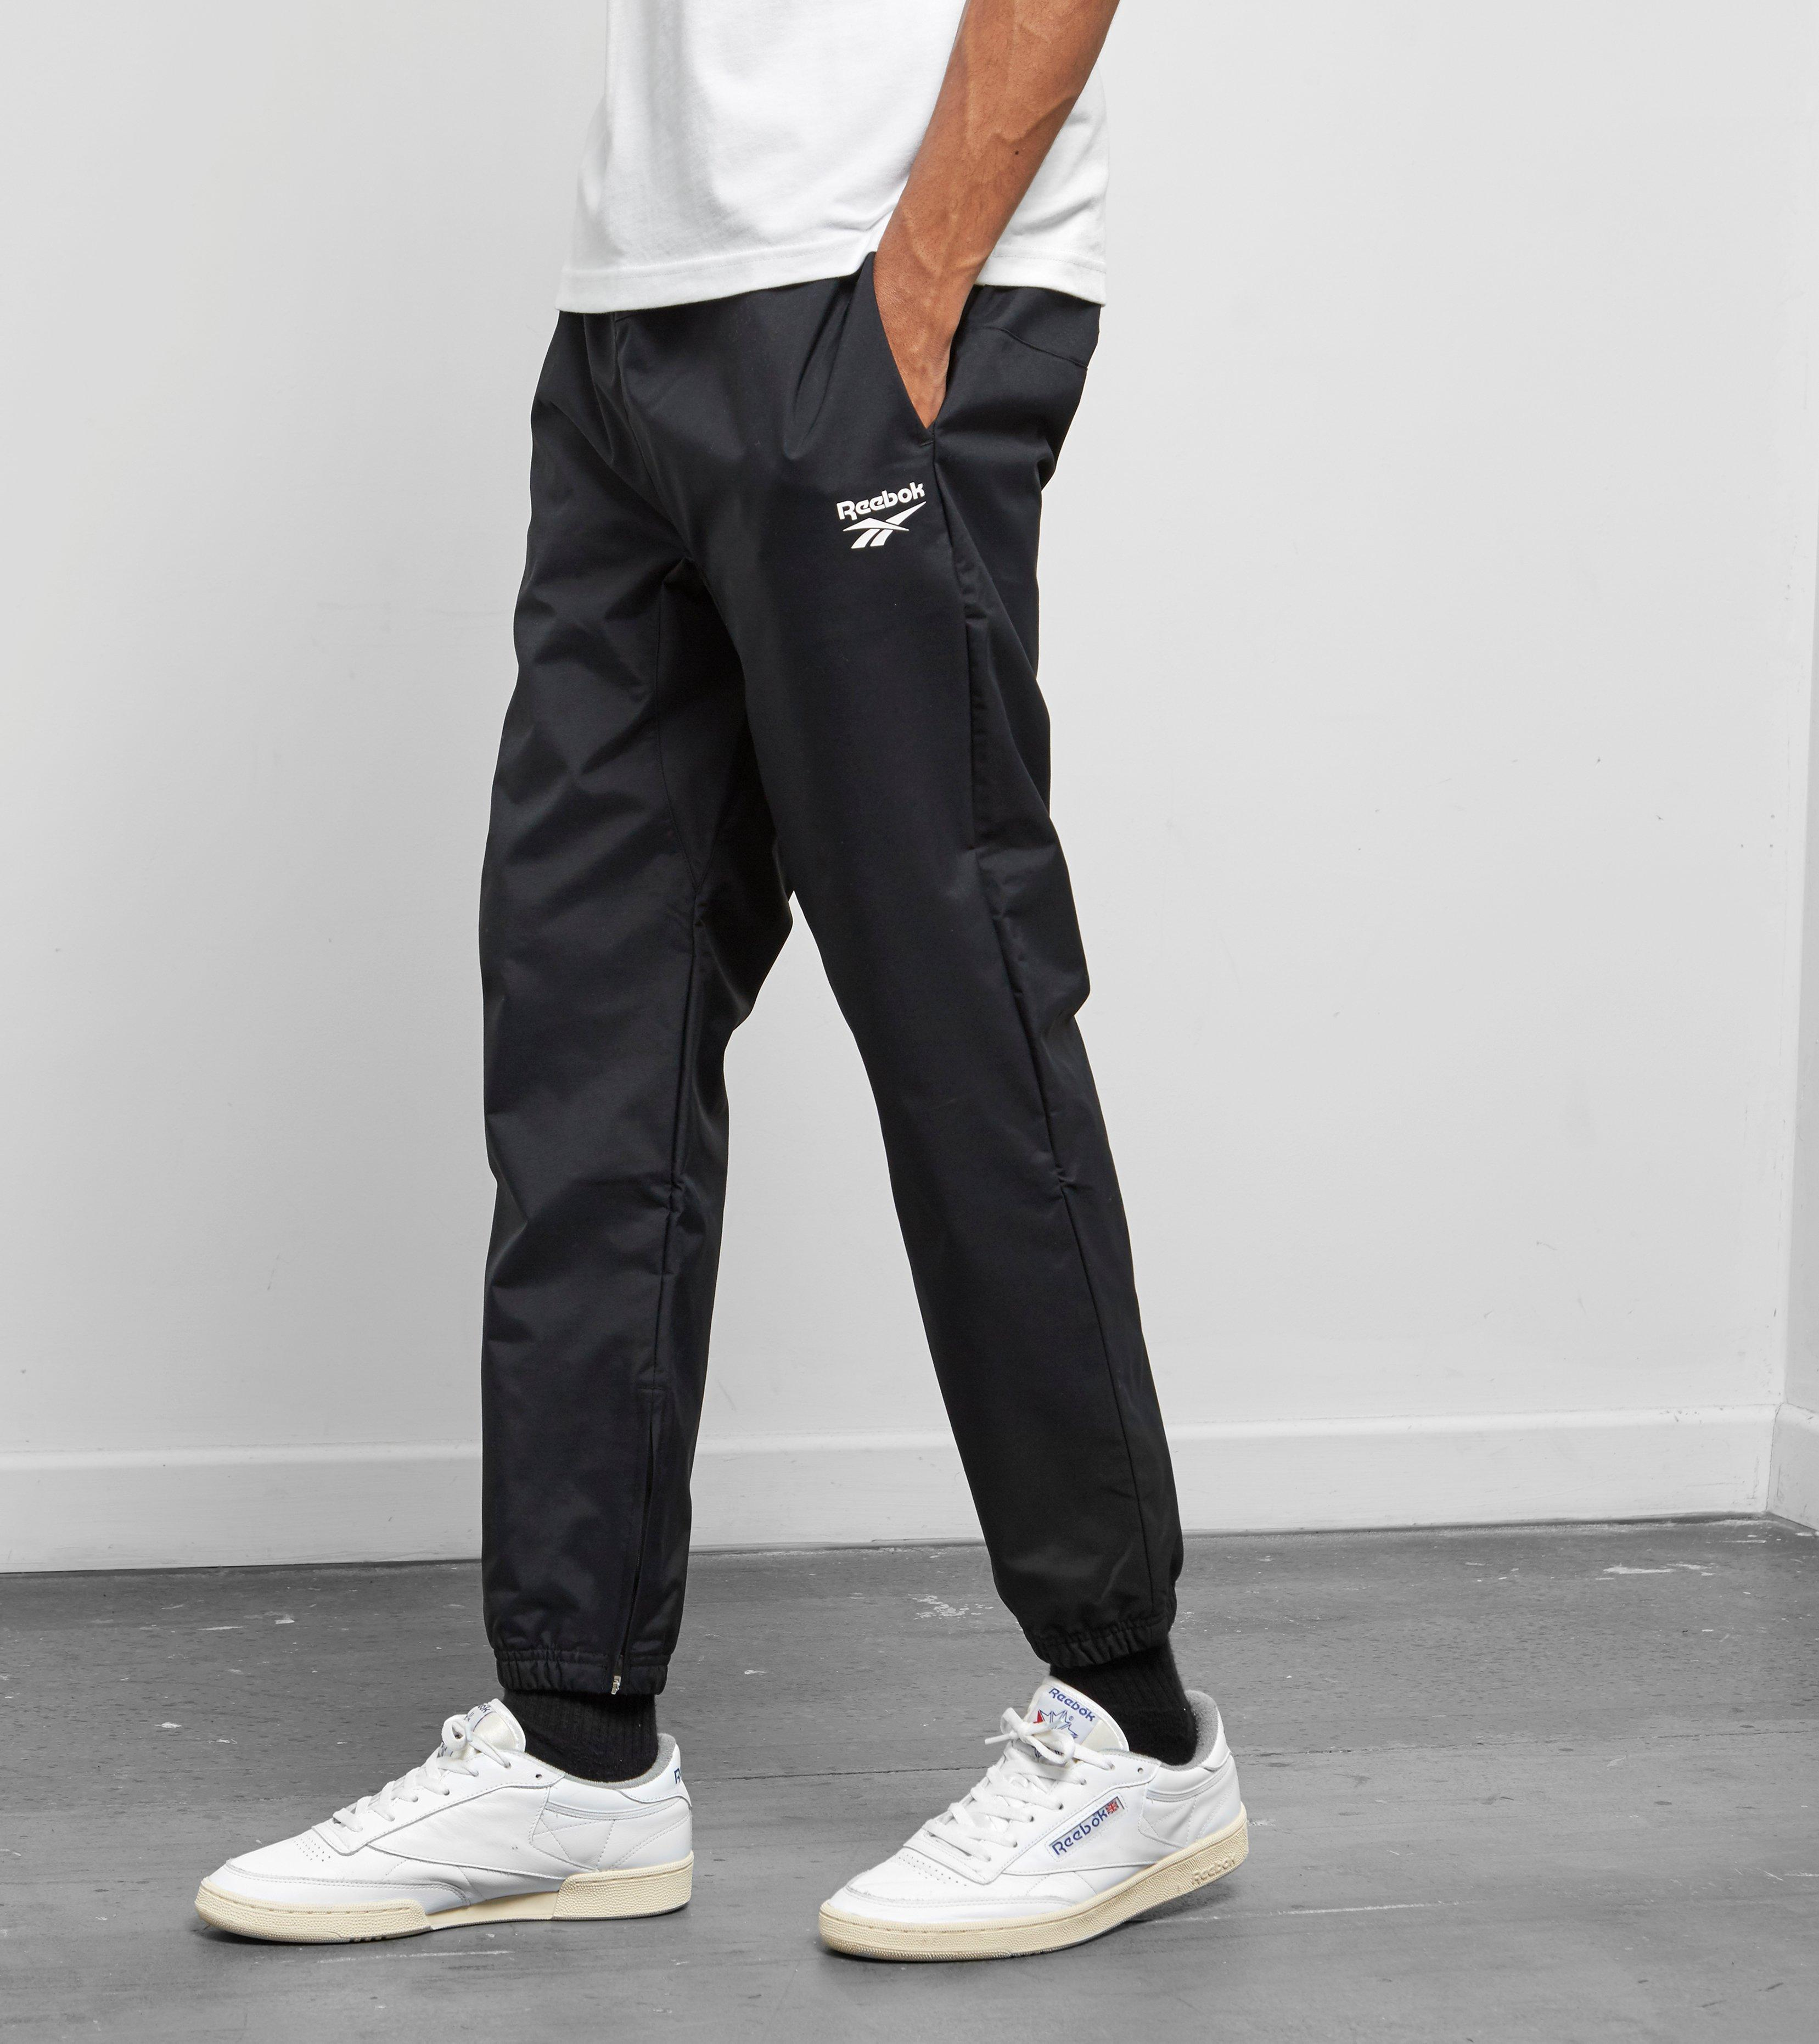 67e20125ca48 Lyst - Reebok Lost And Found Track Pants in Black for Men